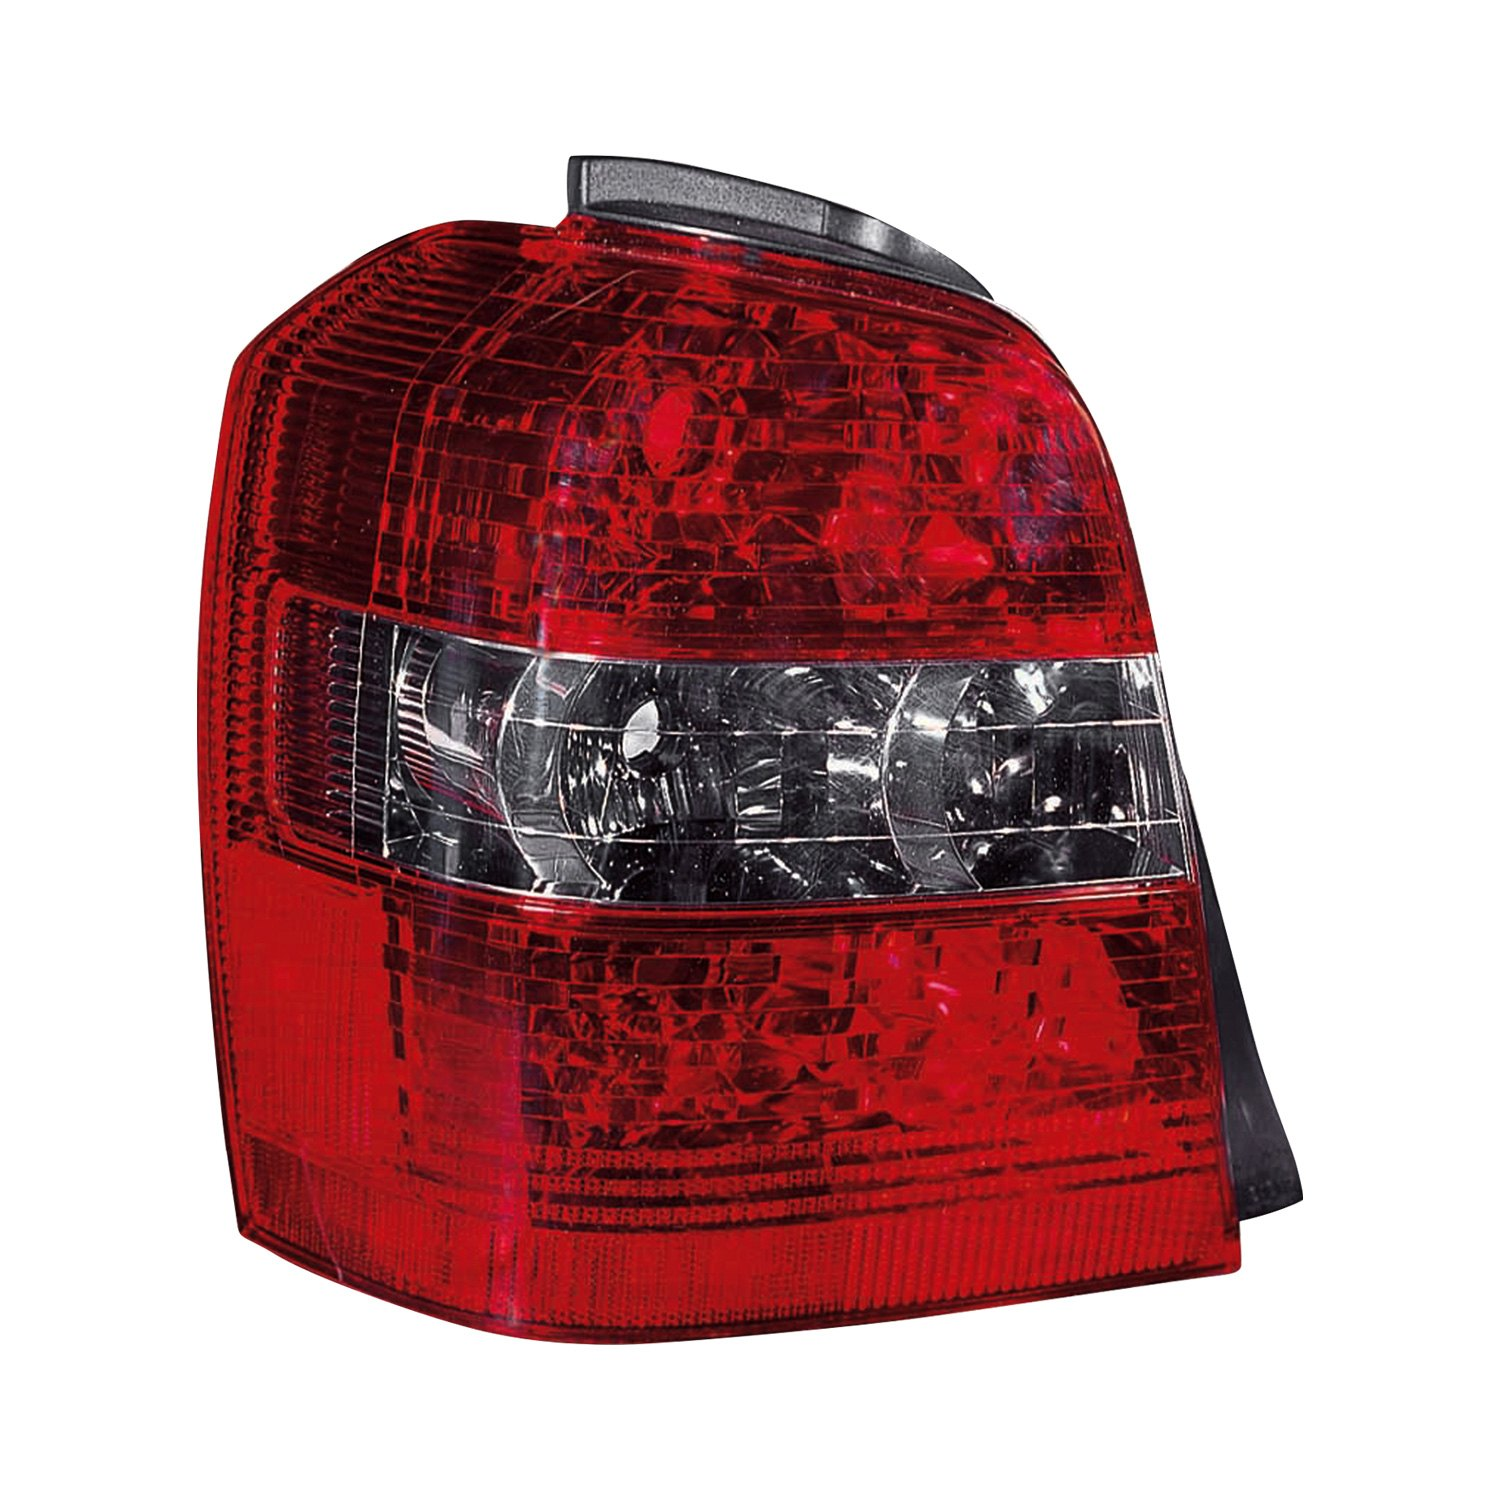 Tail Light Lens Replacement : Replace toyota highlander  replacement tail